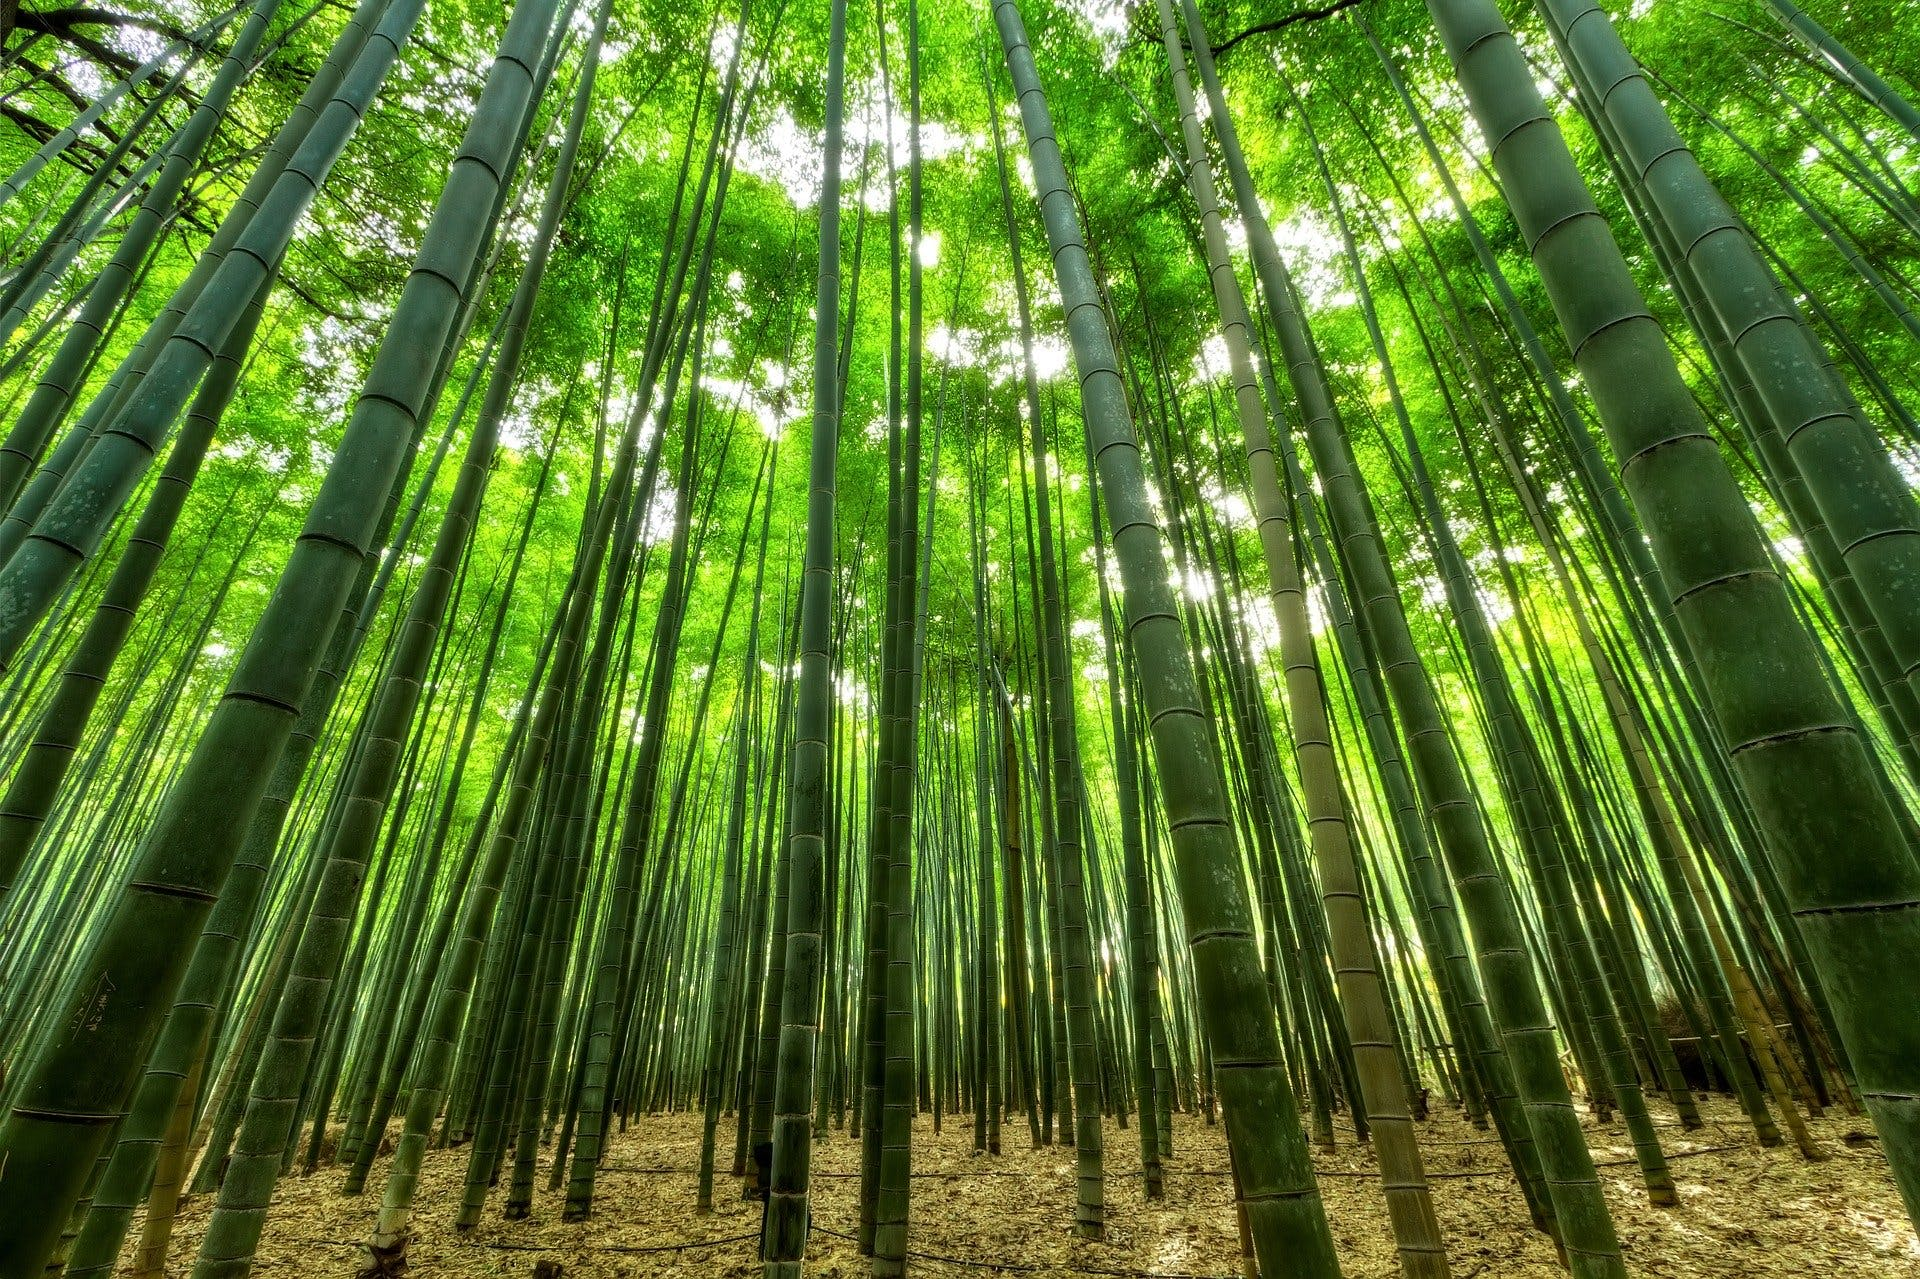 bamboo is a great material to help combat sweaty feet